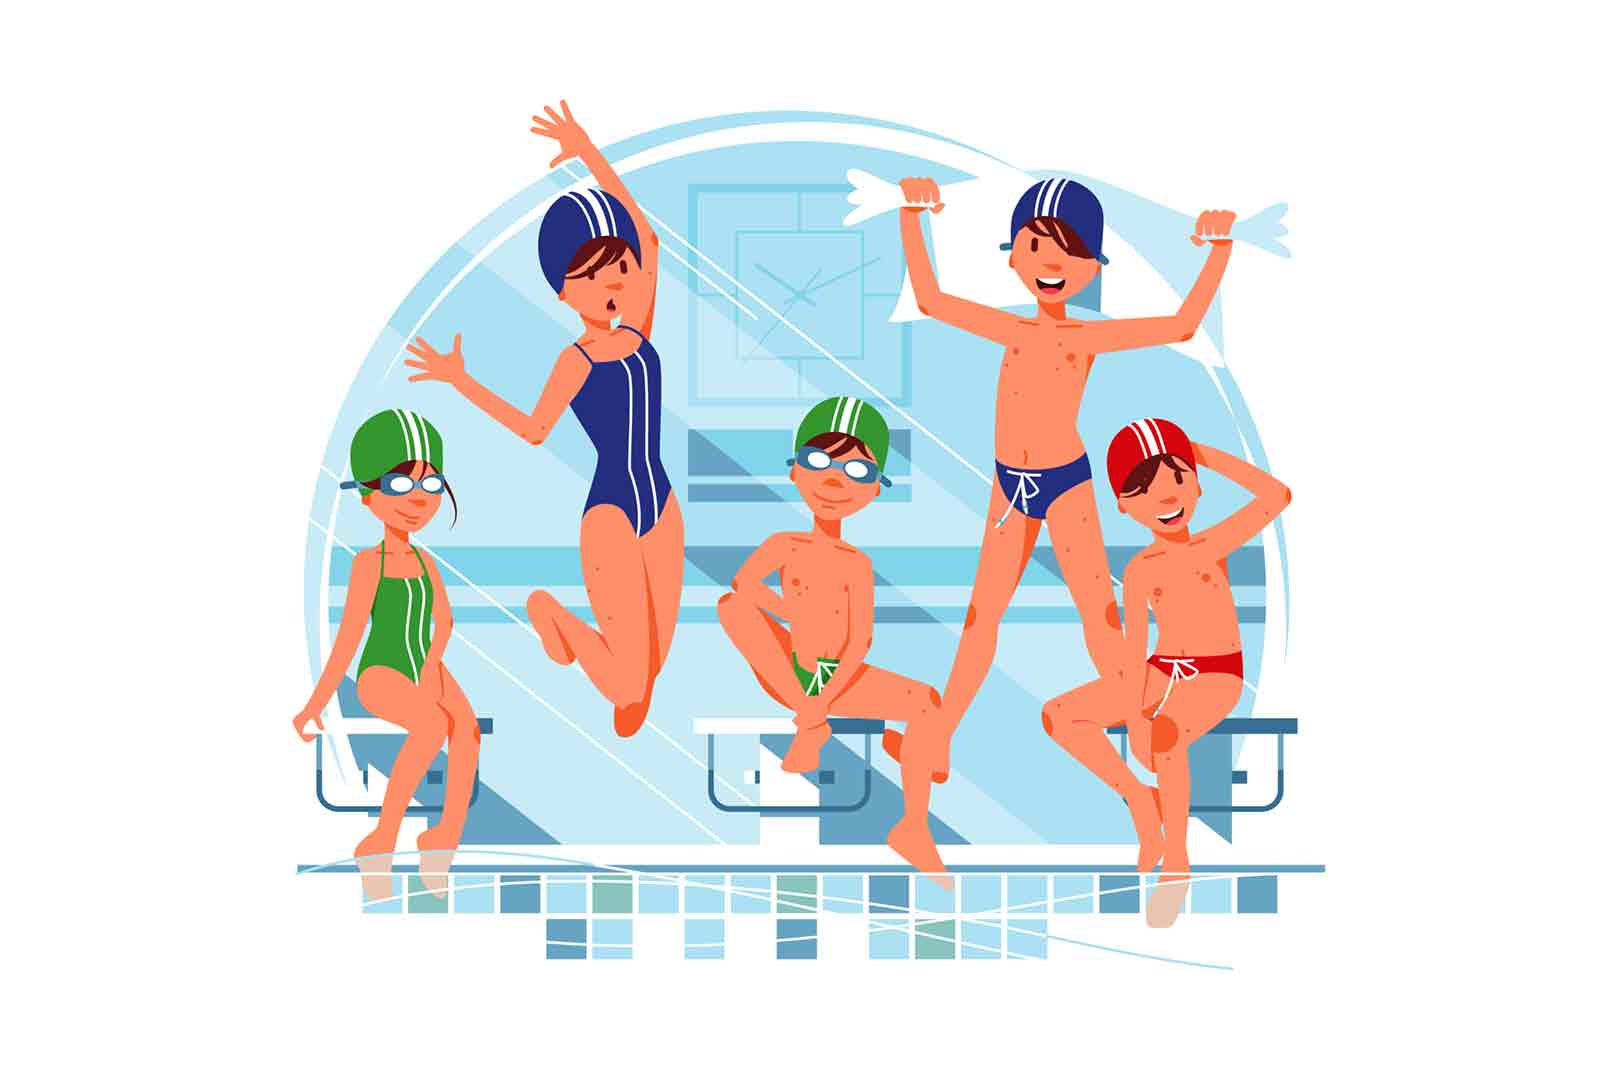 Kids boys and girls prepare before swimming competitions vector illustration.